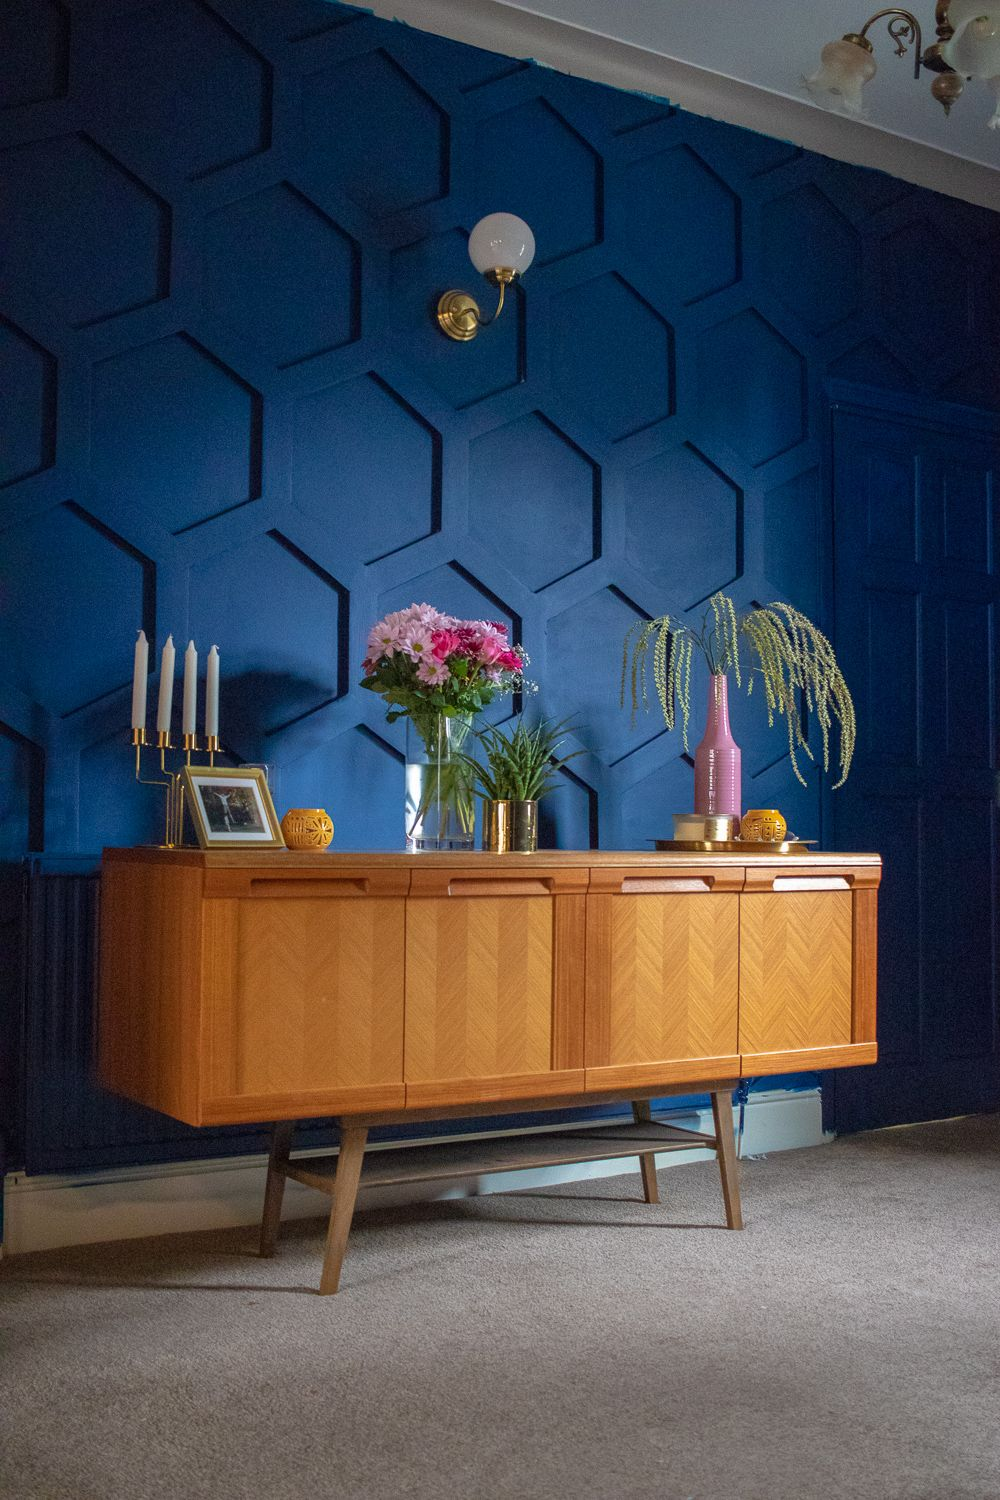 20 Ways to Add Interest with Wall Paneling | The Happy Housie